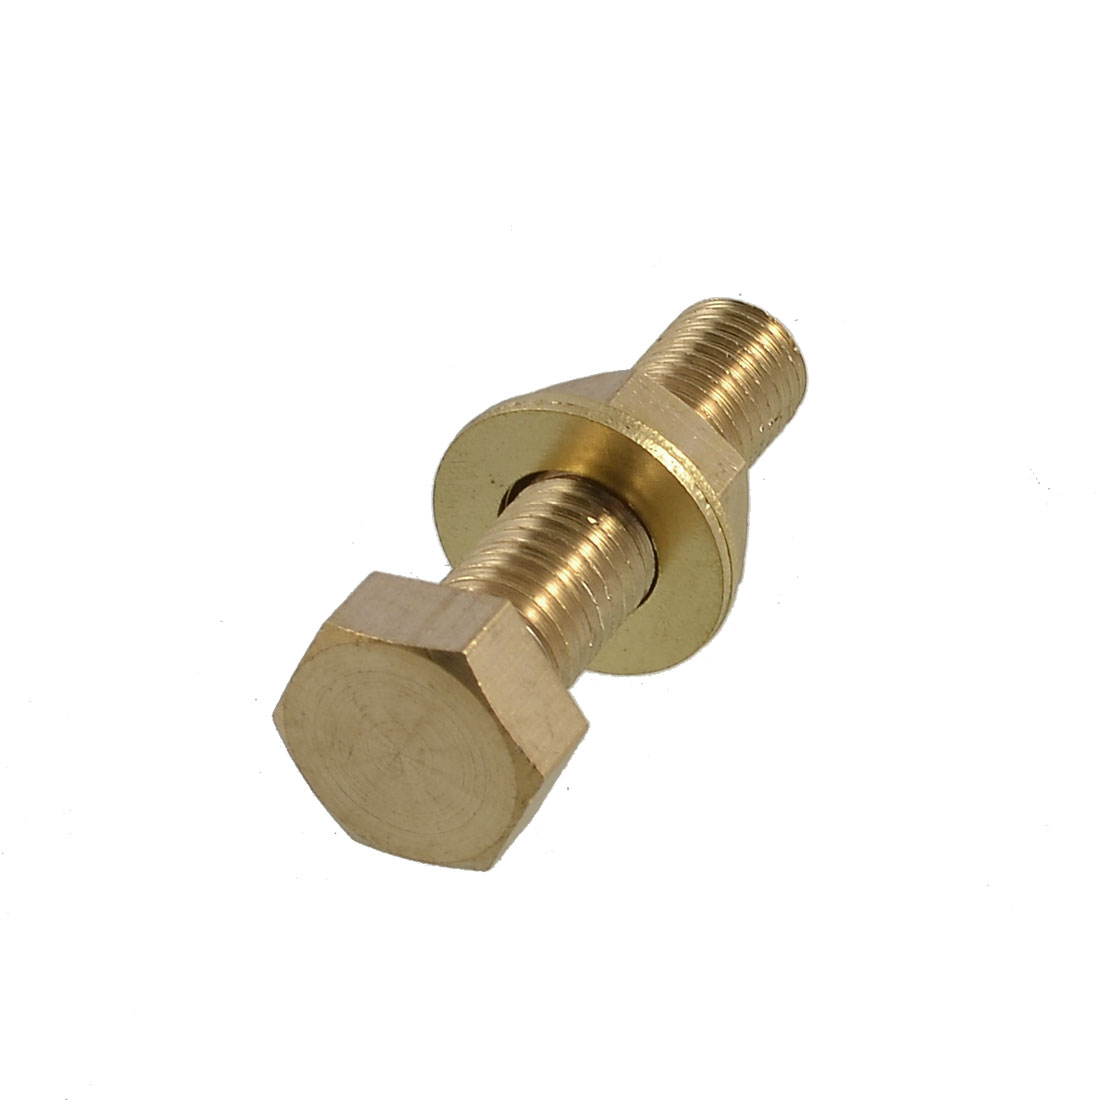 Brass-12mm-x-50mm-Male-Thread-Hex-Head-Screw-Nut-Washer-Set